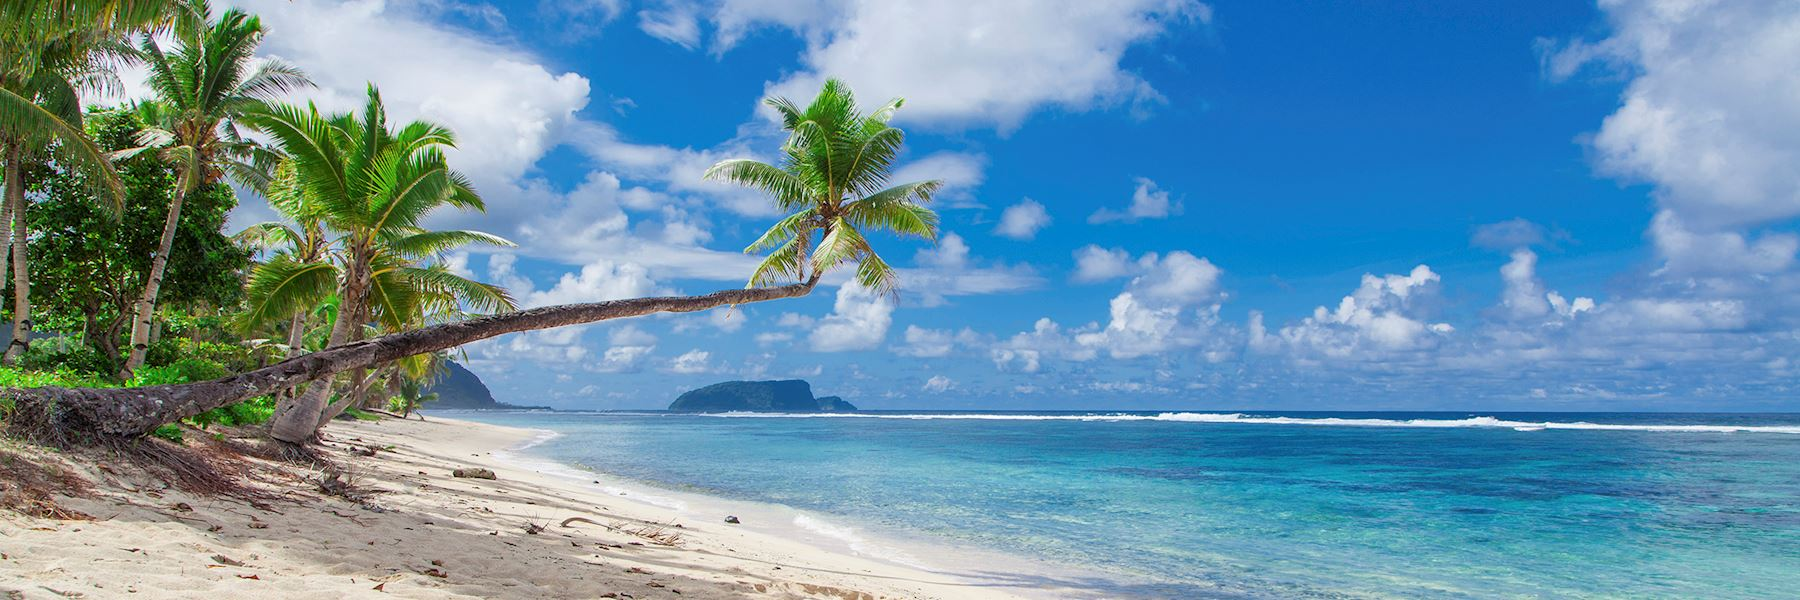 Experts in tailor-made vacations to the South Pacific